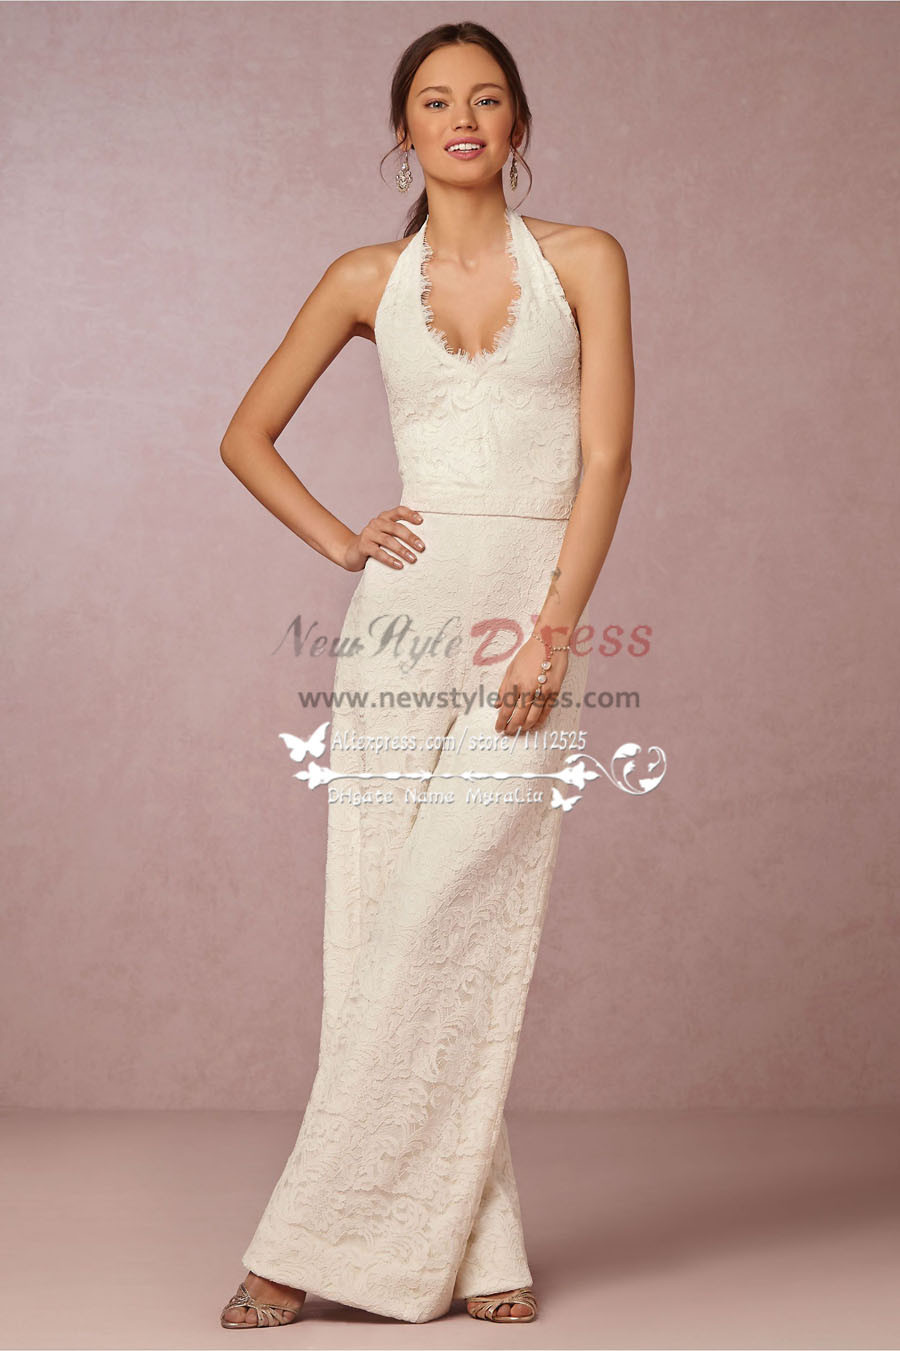 b32642ad51ac New Arrival bridal wedding dress charming lace halter dress jumpsuit wps-048